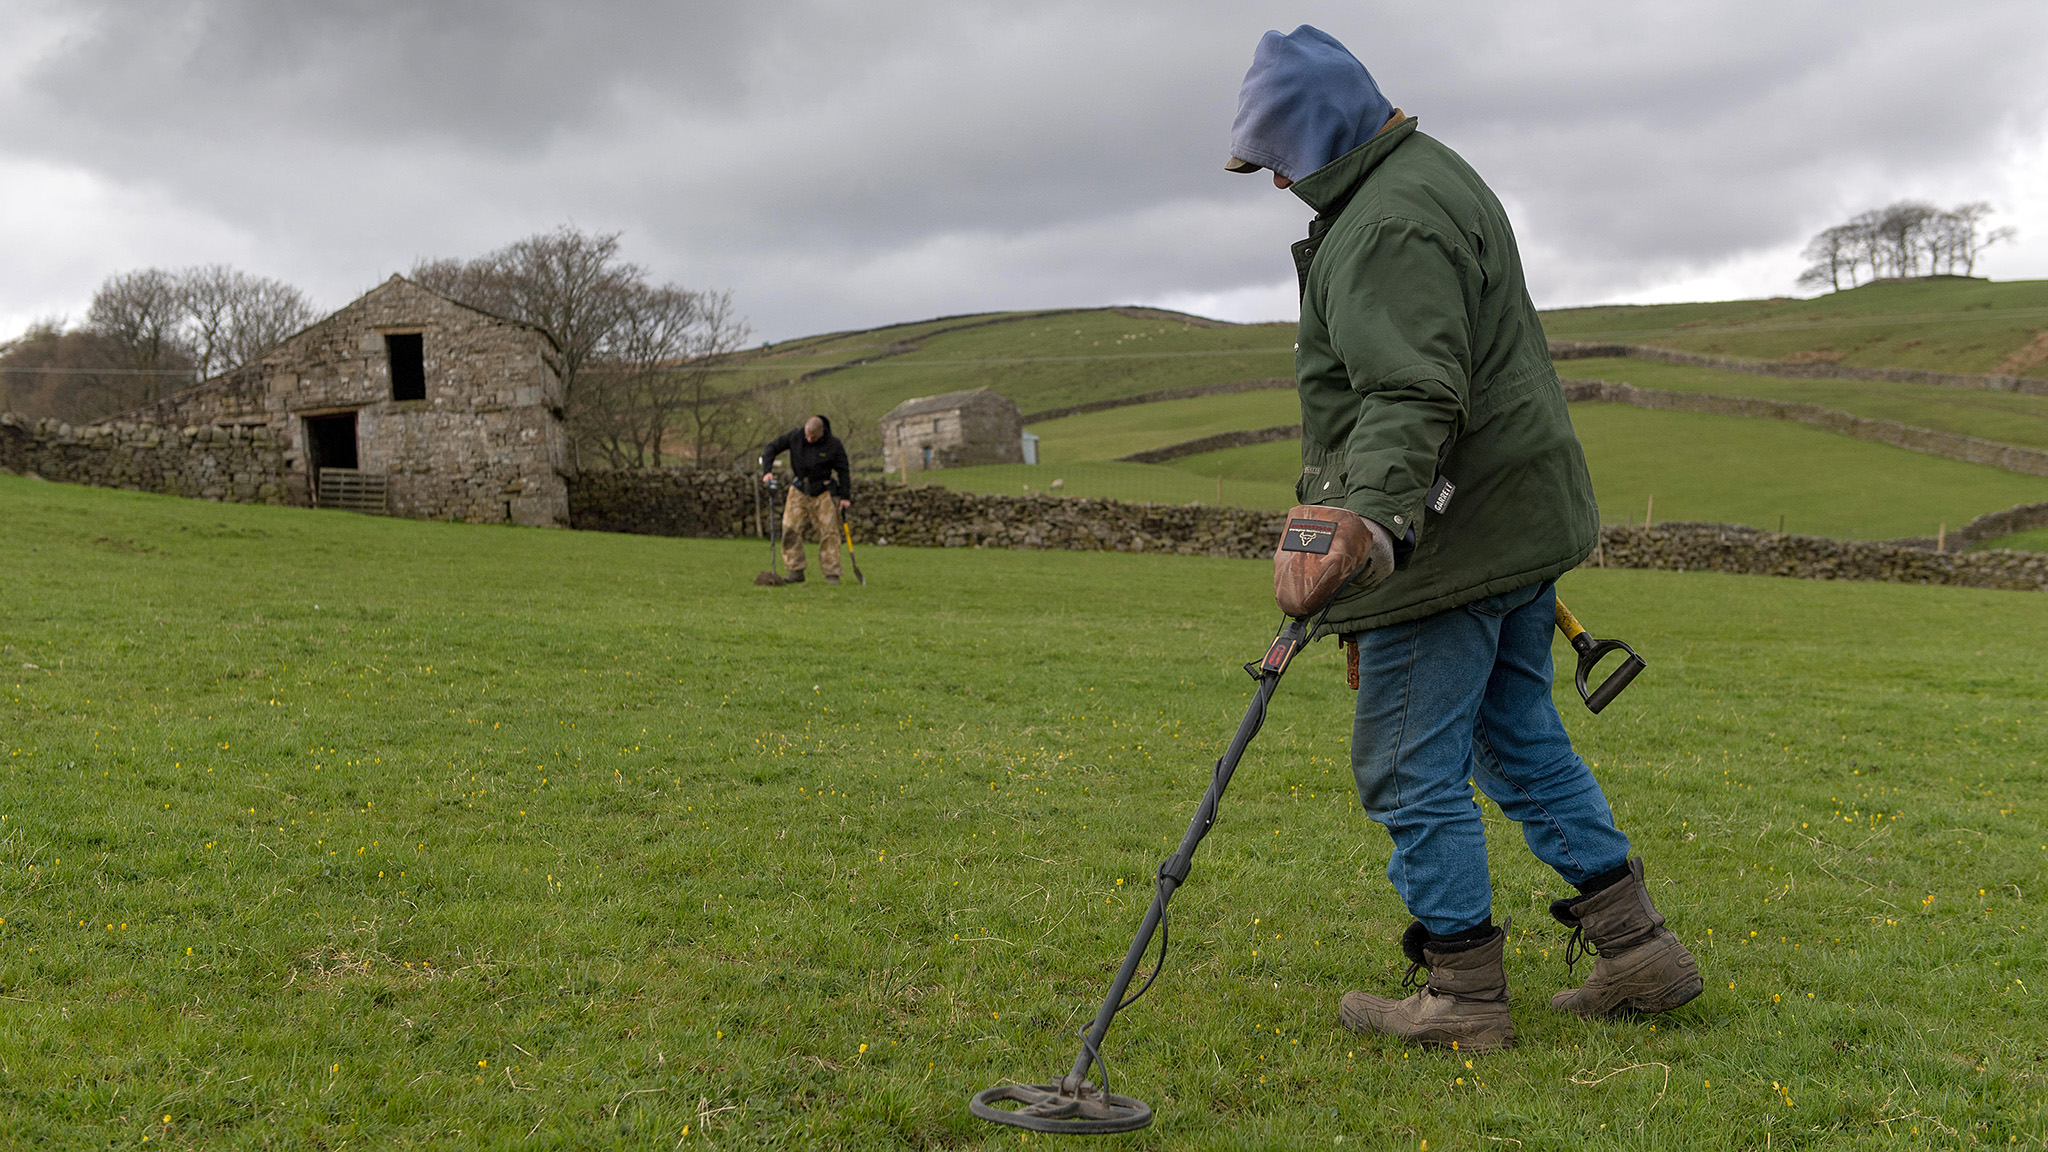 Metal detectorists searching farmland for metal artefacts